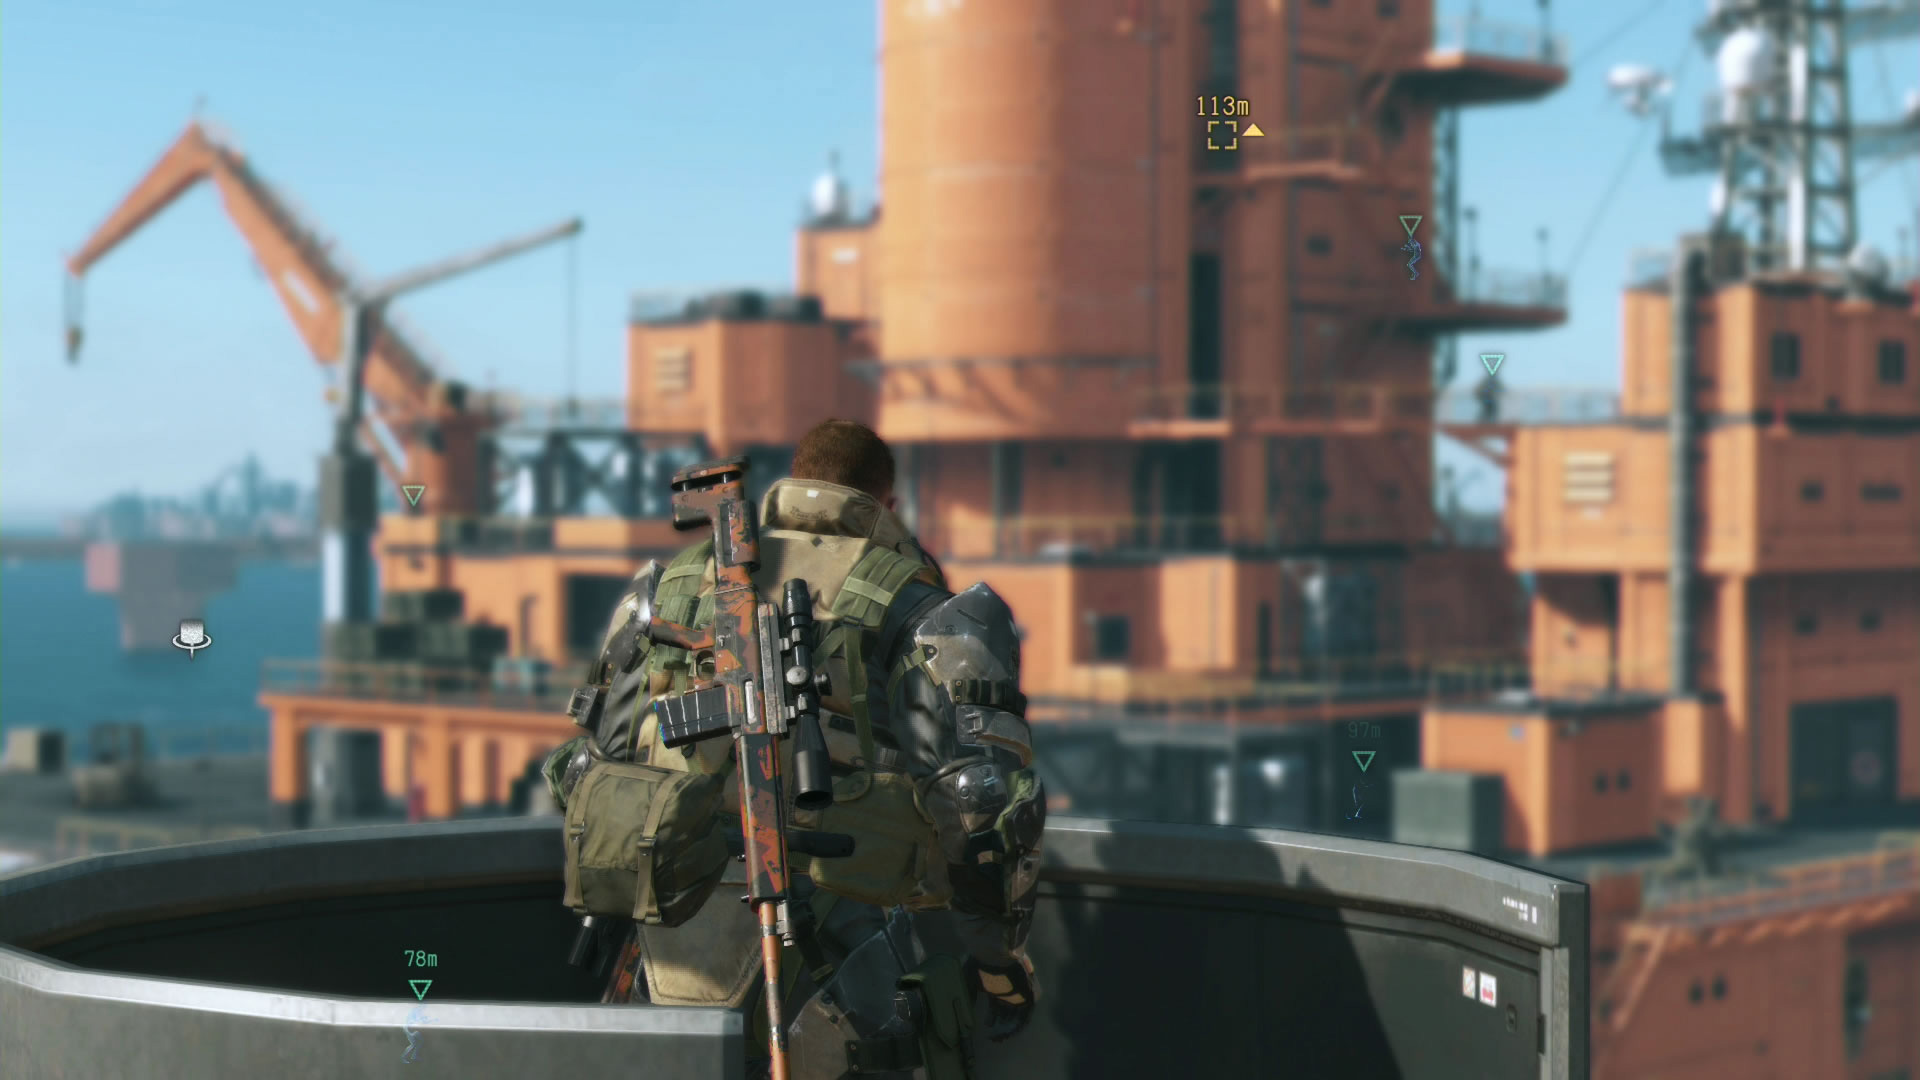 Metal-Gear-Solid-V-The-Phantom-Pain-Screenshot-Gamescom-2015-5